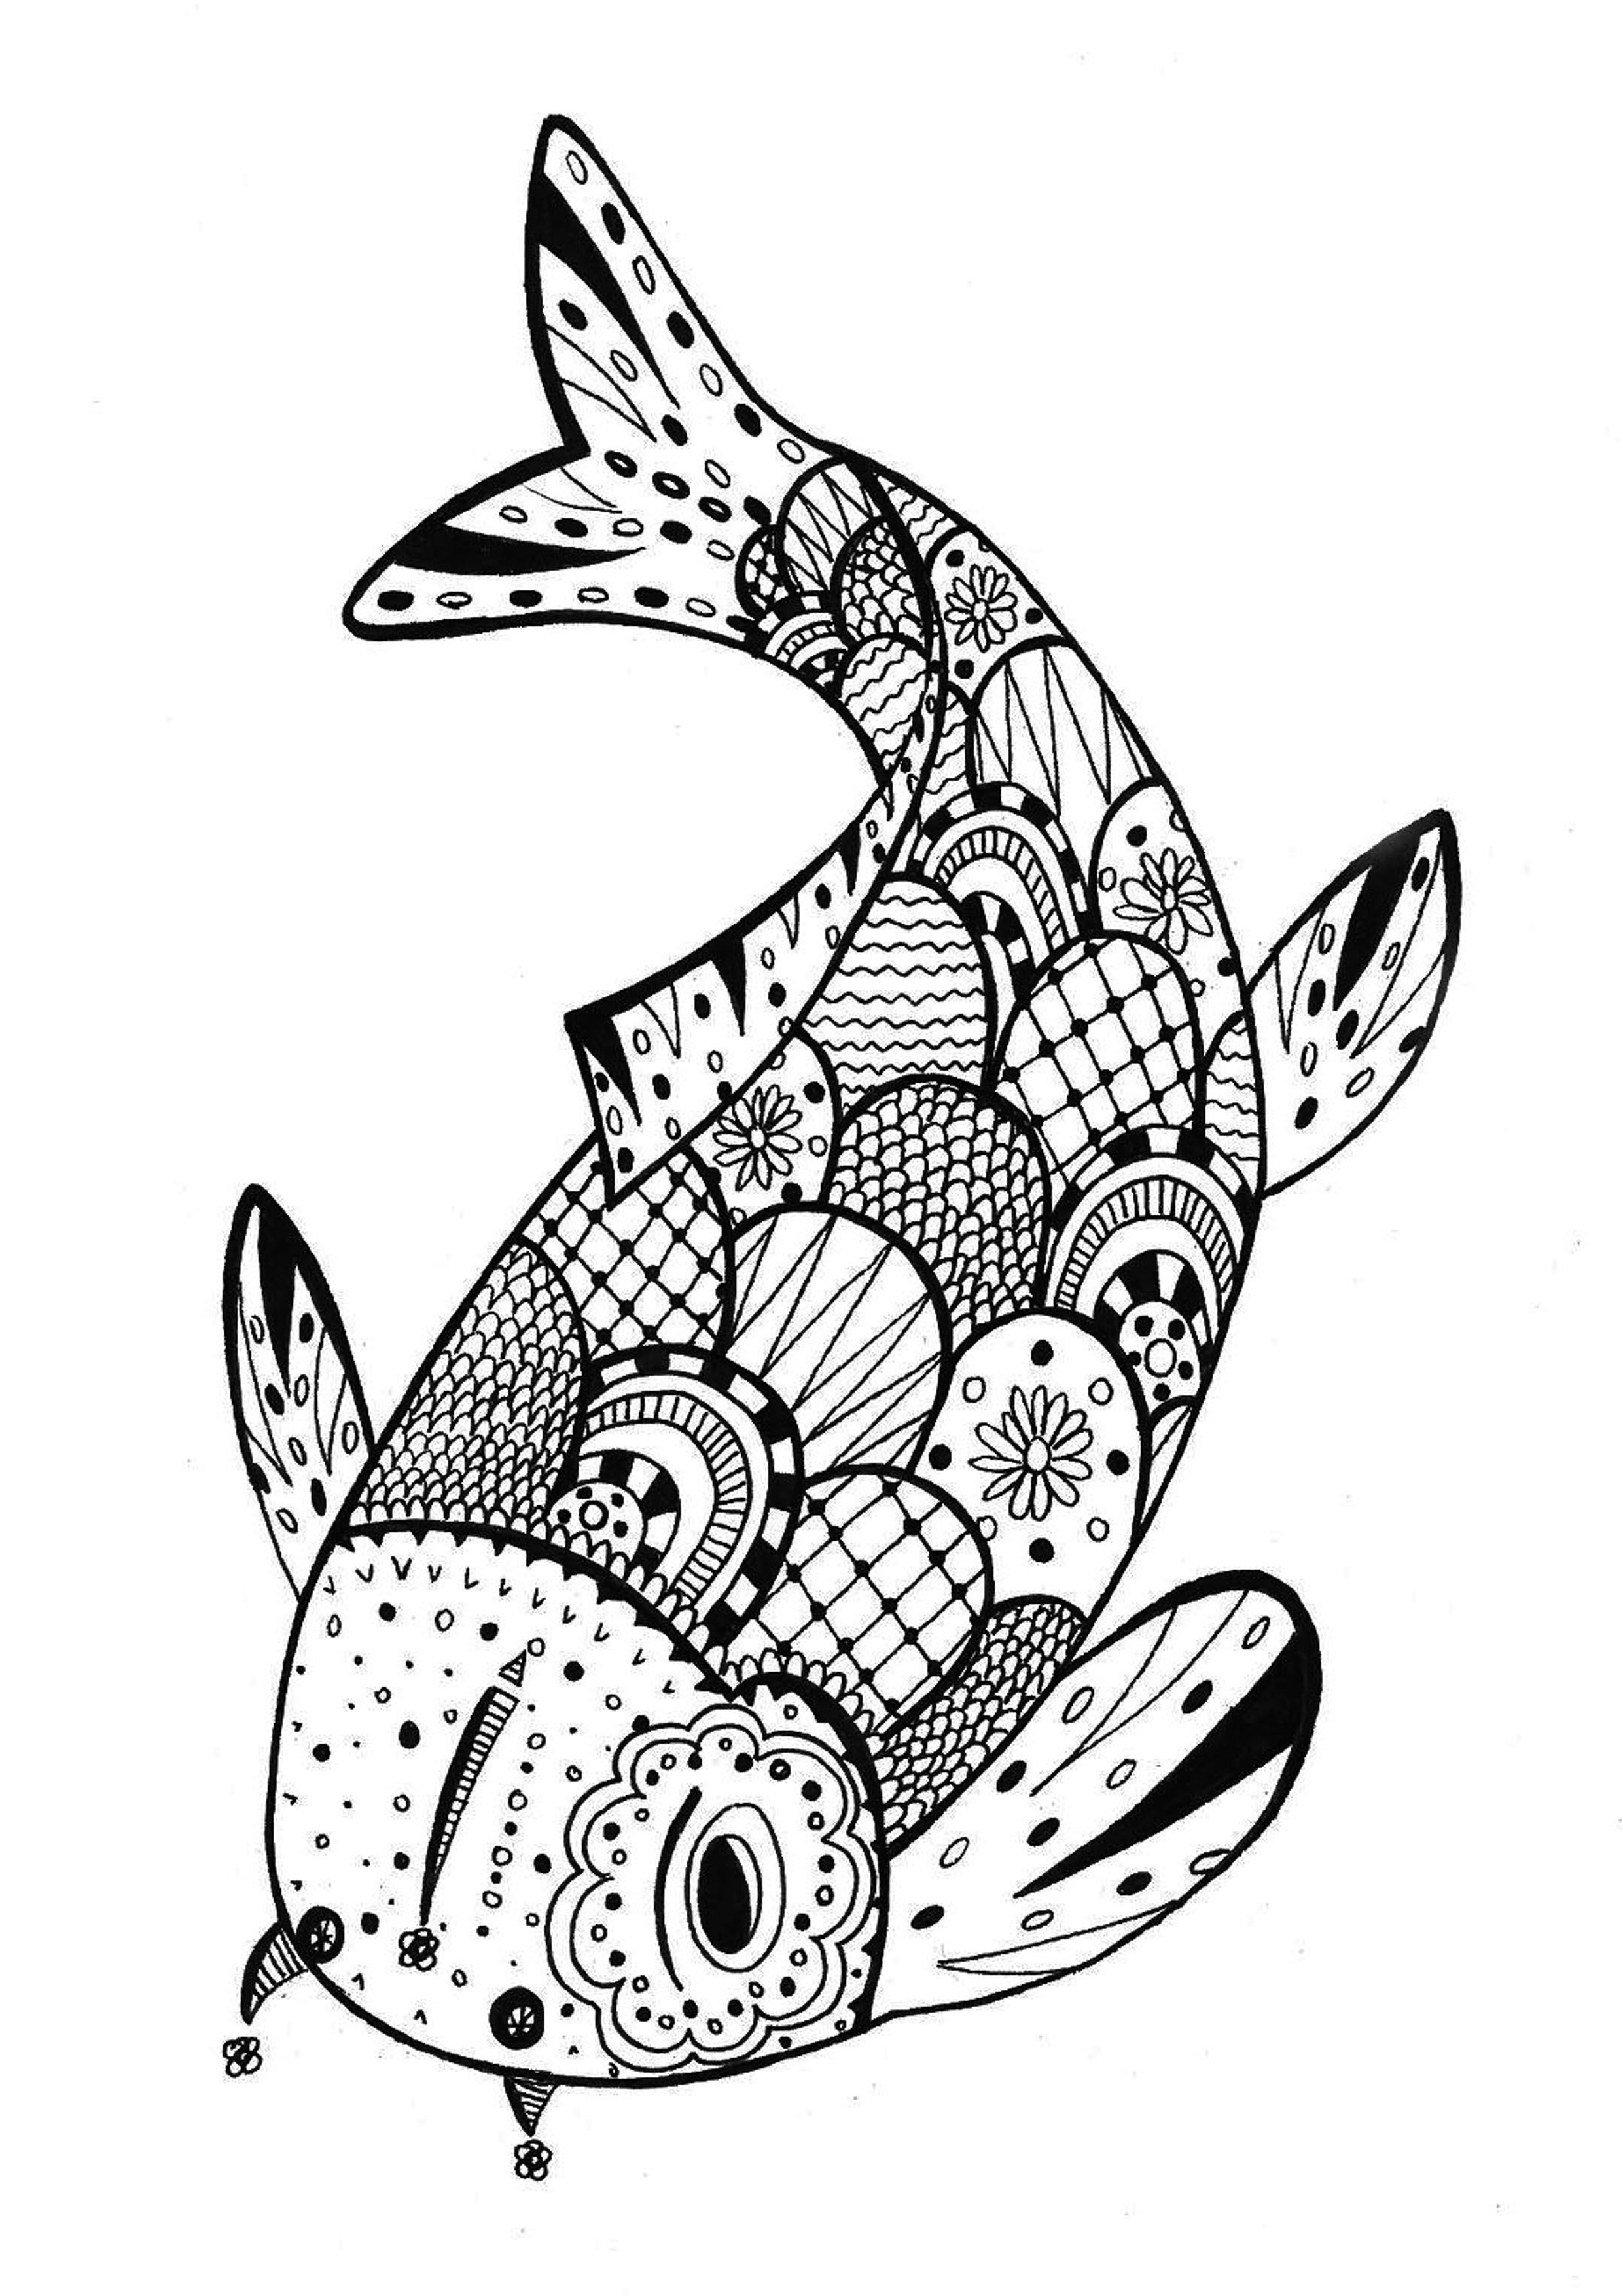 2480x3508 Loaves And Fishes Coloring Page Gulfmik To Print